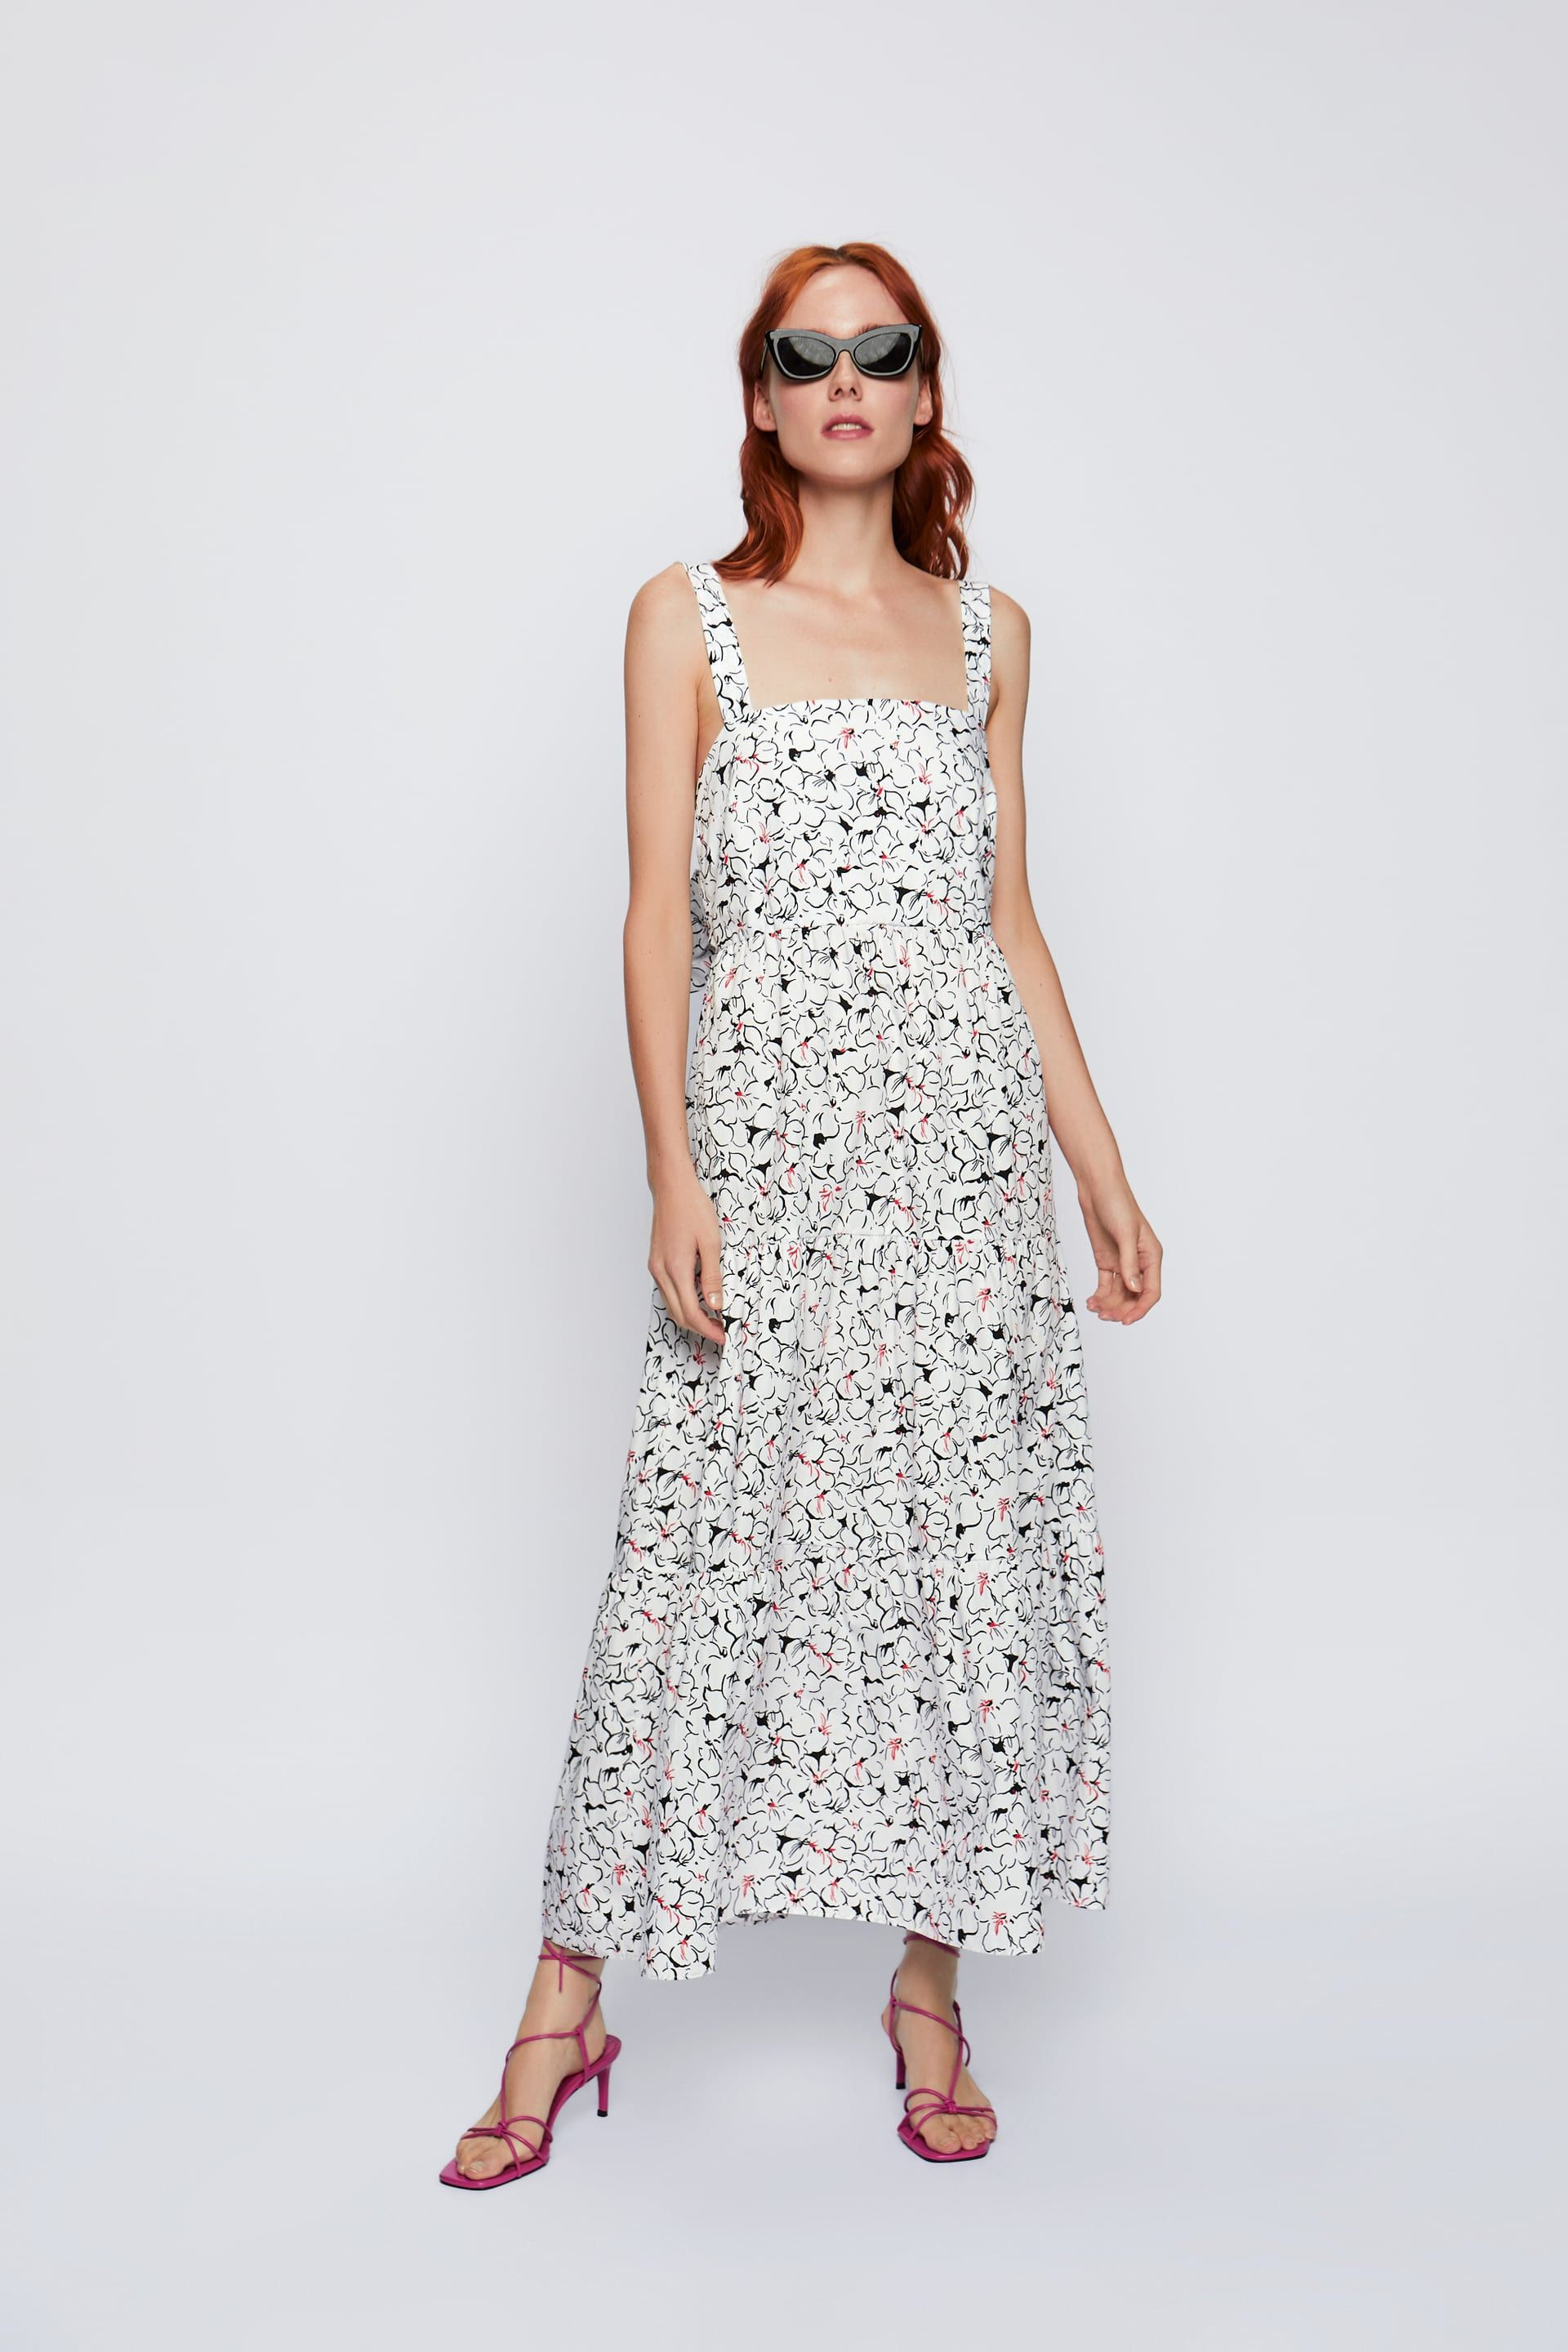 Zara S Annual Summer Sale Is Here These Are The 28 Items You Should Buy First High Fashion Street Style Print Dress Dresses [ 2880 x 1920 Pixel ]